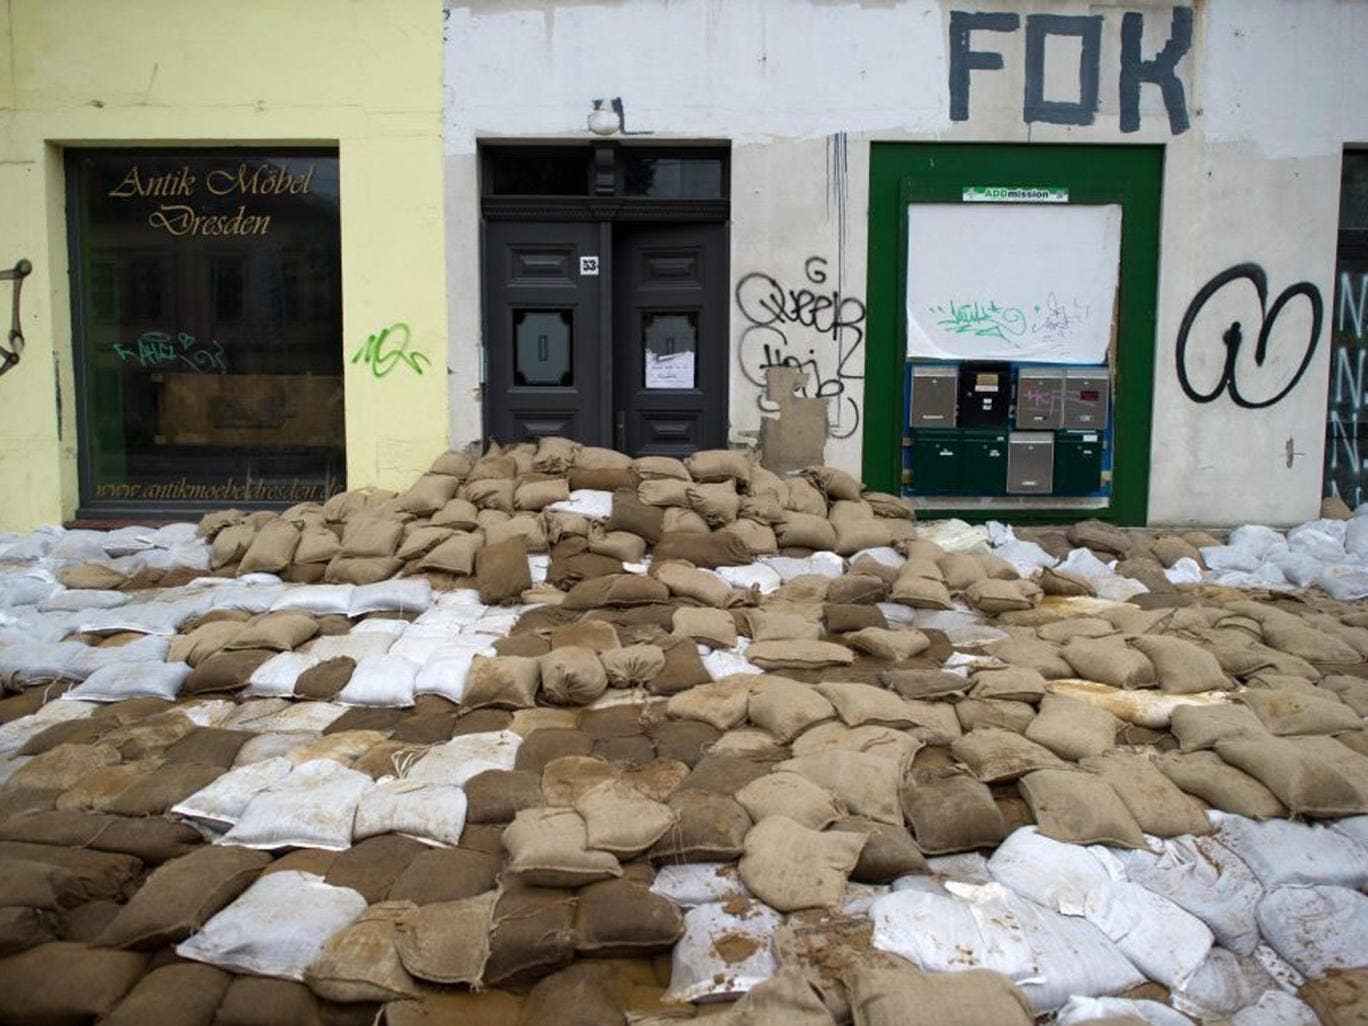 Sandbags protect a premises against the flood in Dresden, Germany, on 6 June 2013. Today's flood crest is likely to be the biggest test yet of its floodwalls since 2002 when the Elbe River inundated historic palaces